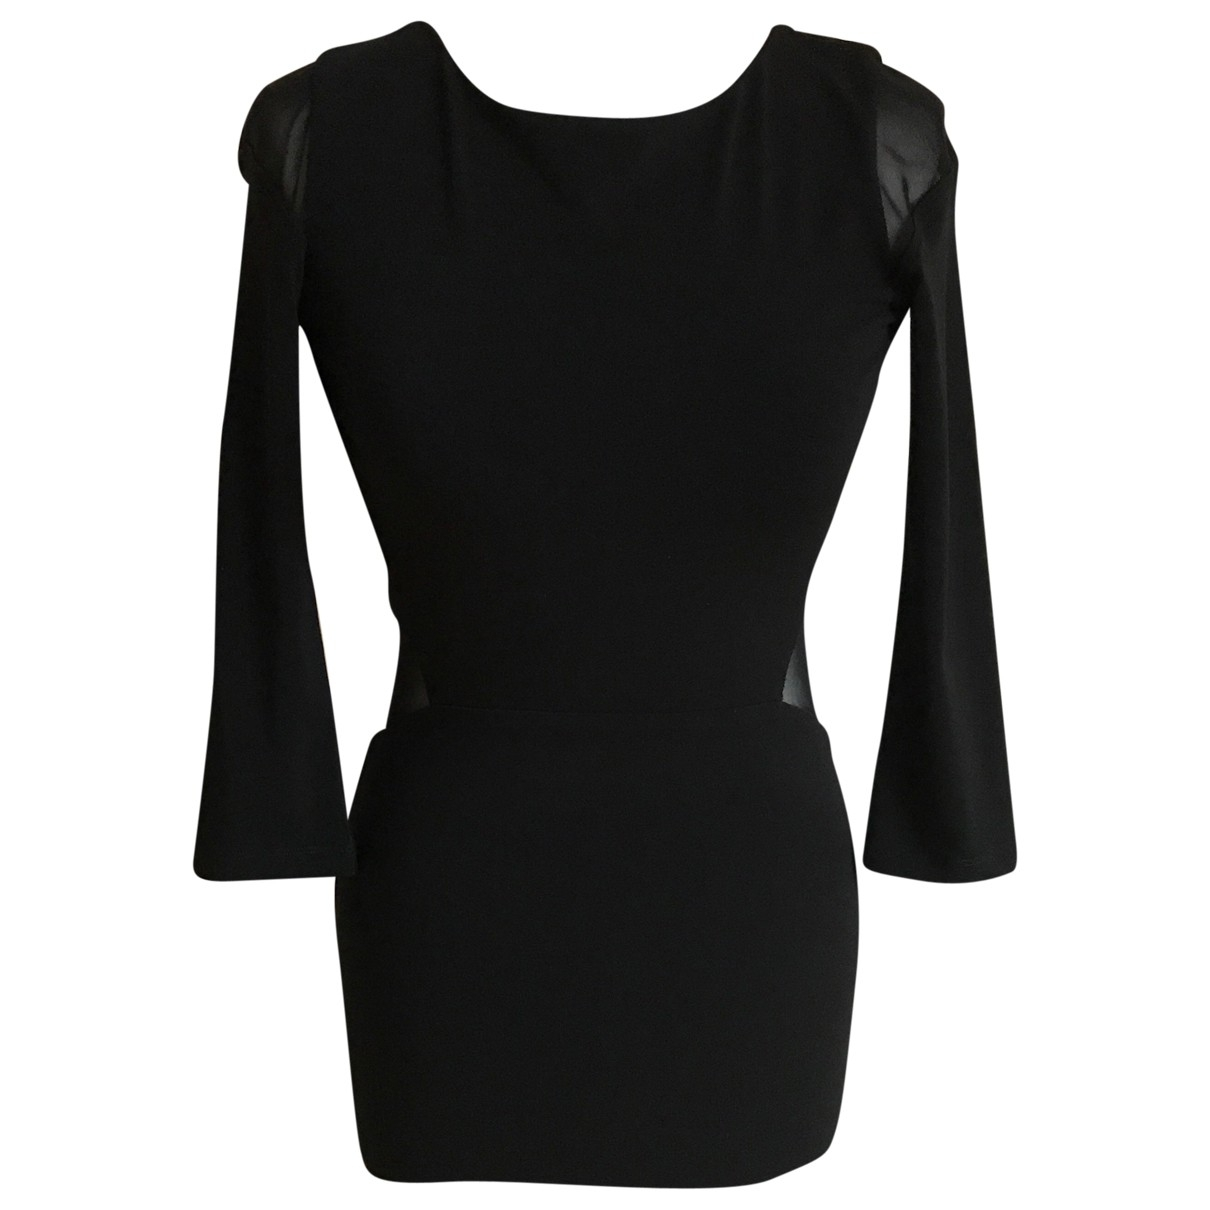 Elizabeth And James \N Black dress for Women S International